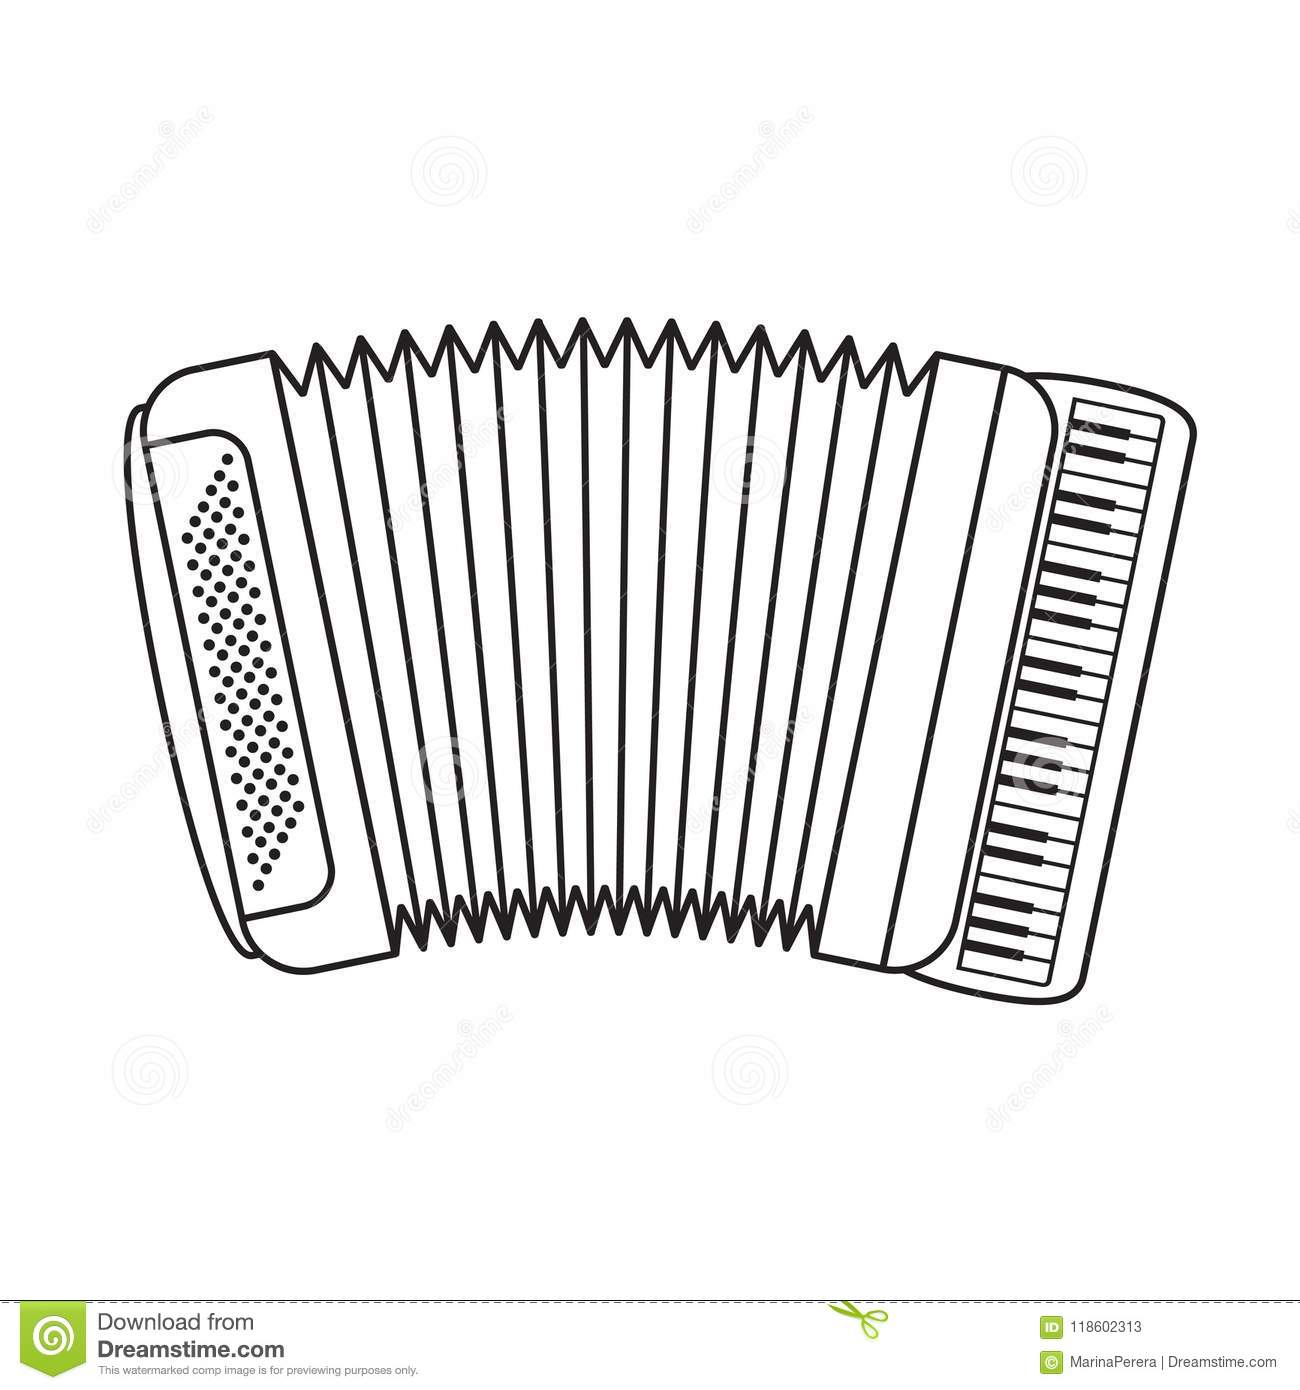 Isolated Black Outline Accordion Stock Vector - Illustration of